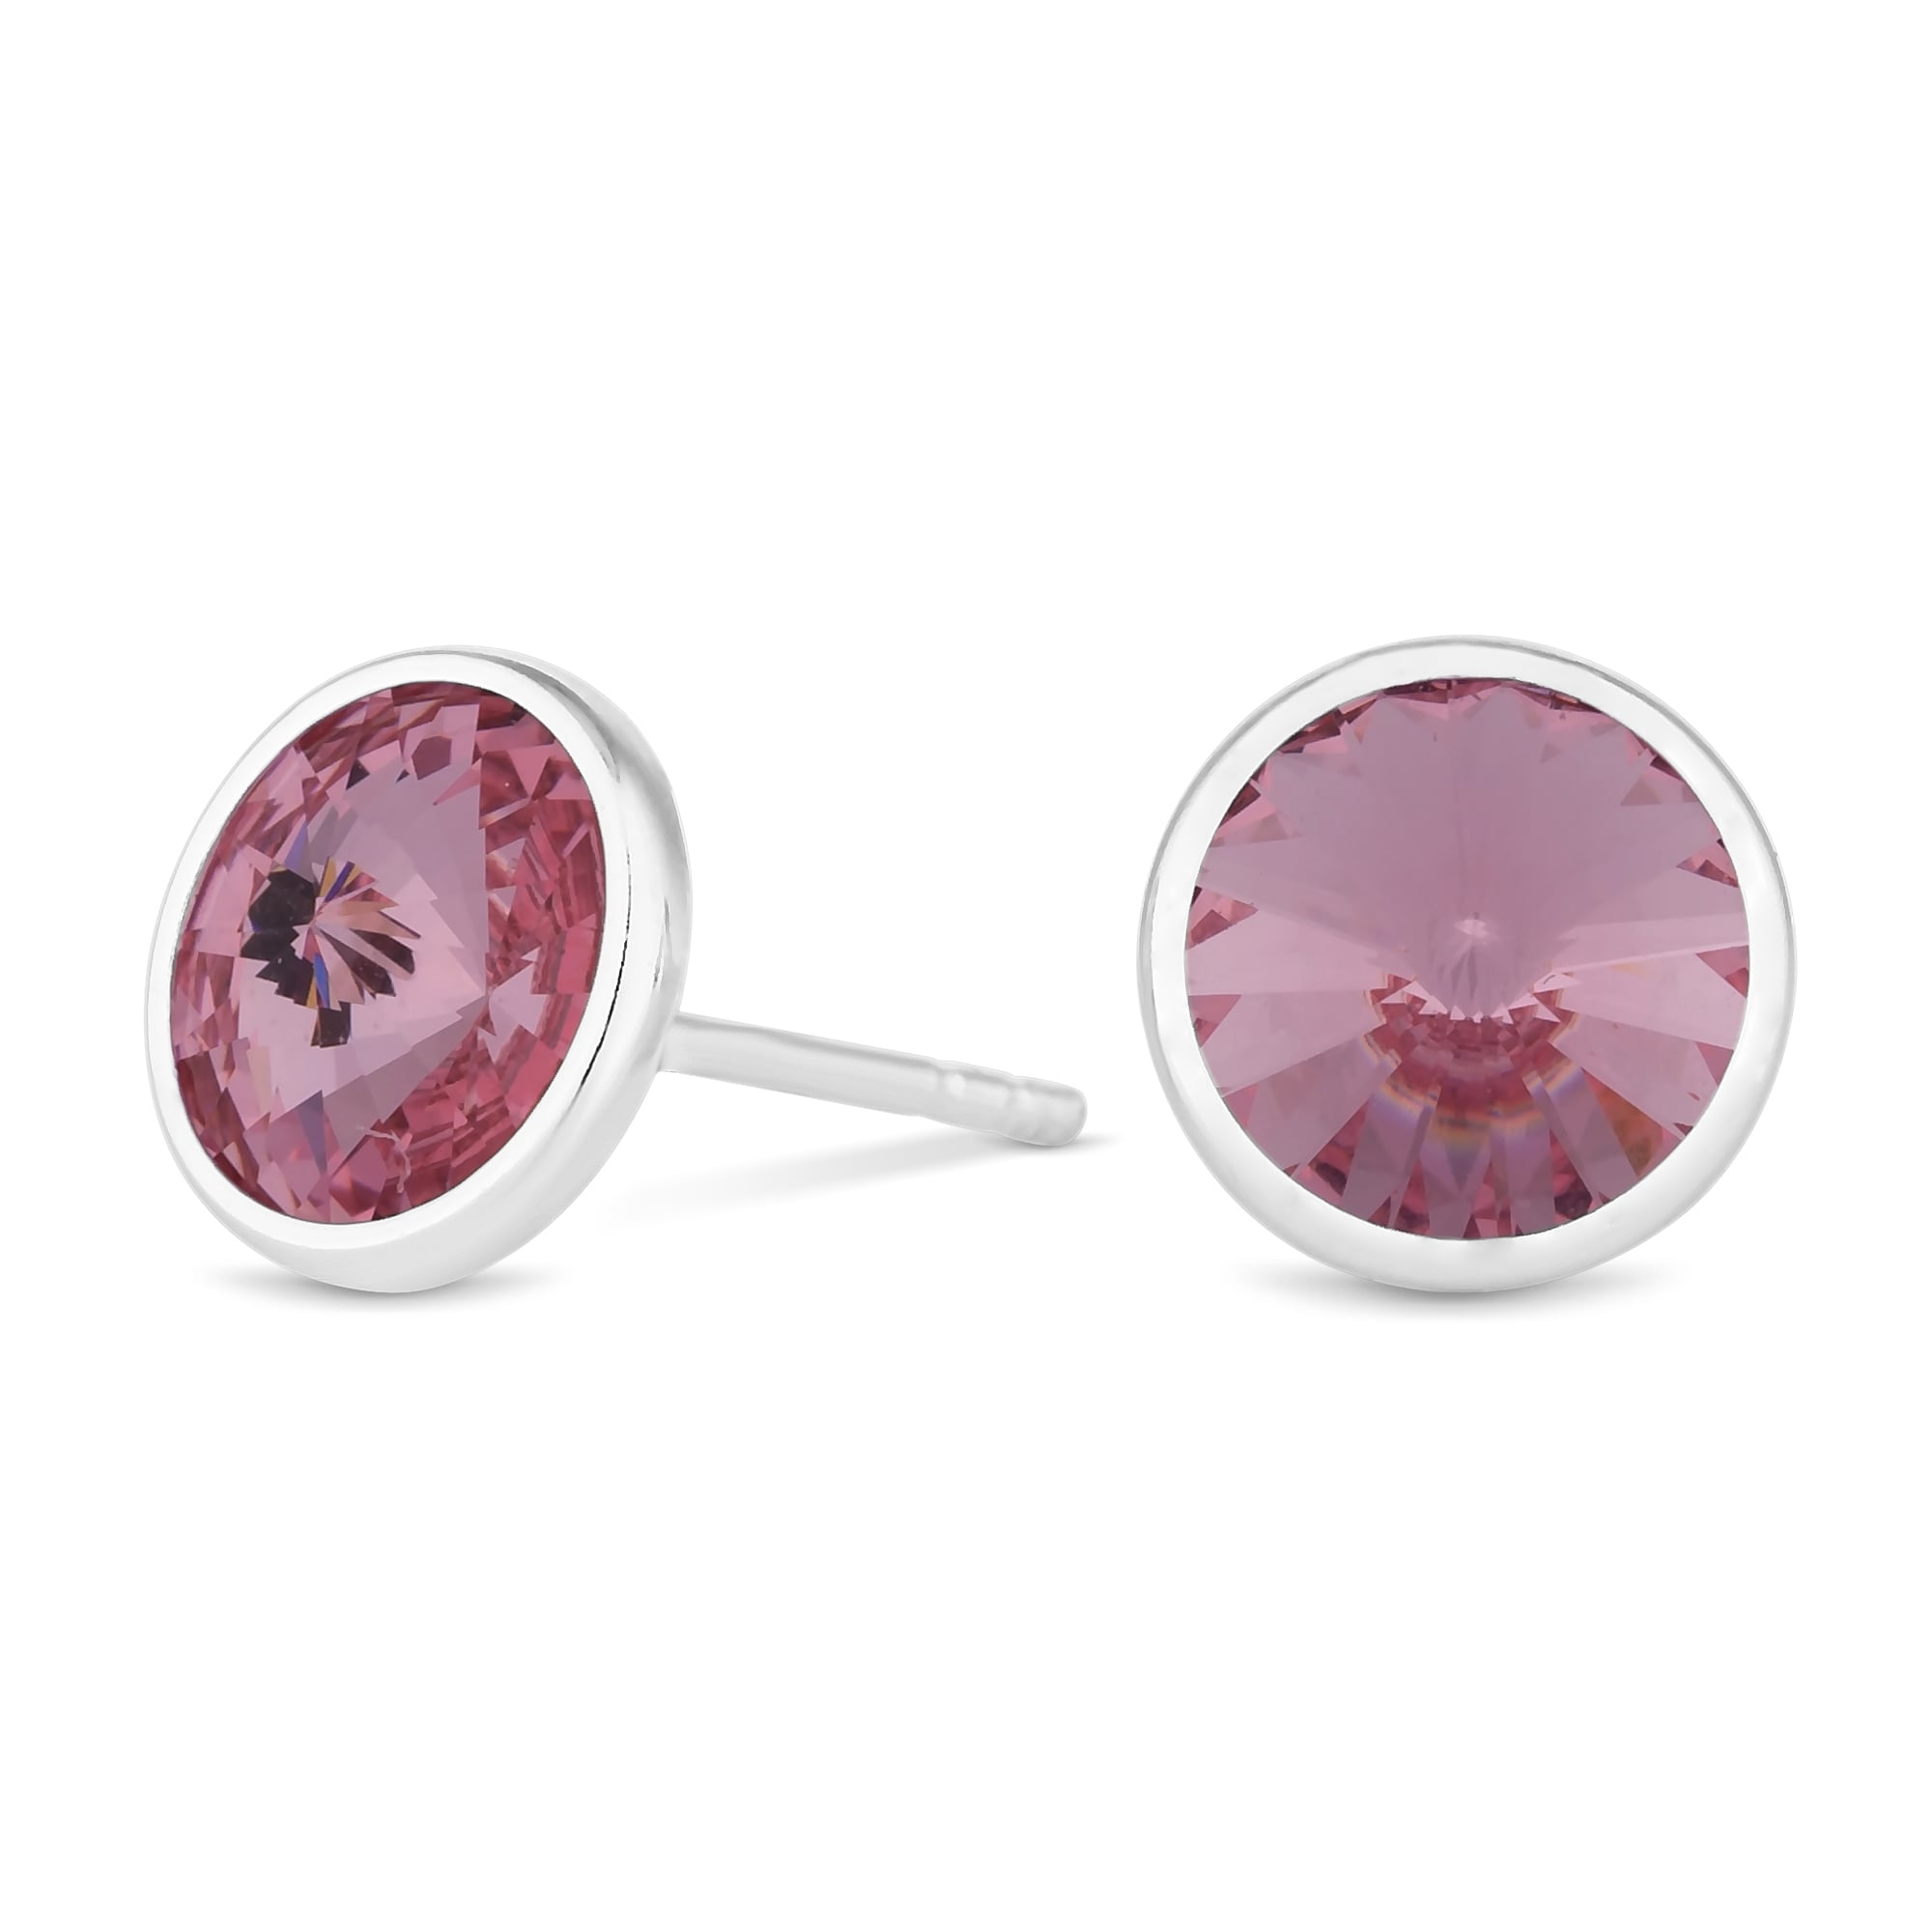 small bas neo pink earrings stud jewellery pale vivienne relief westwood